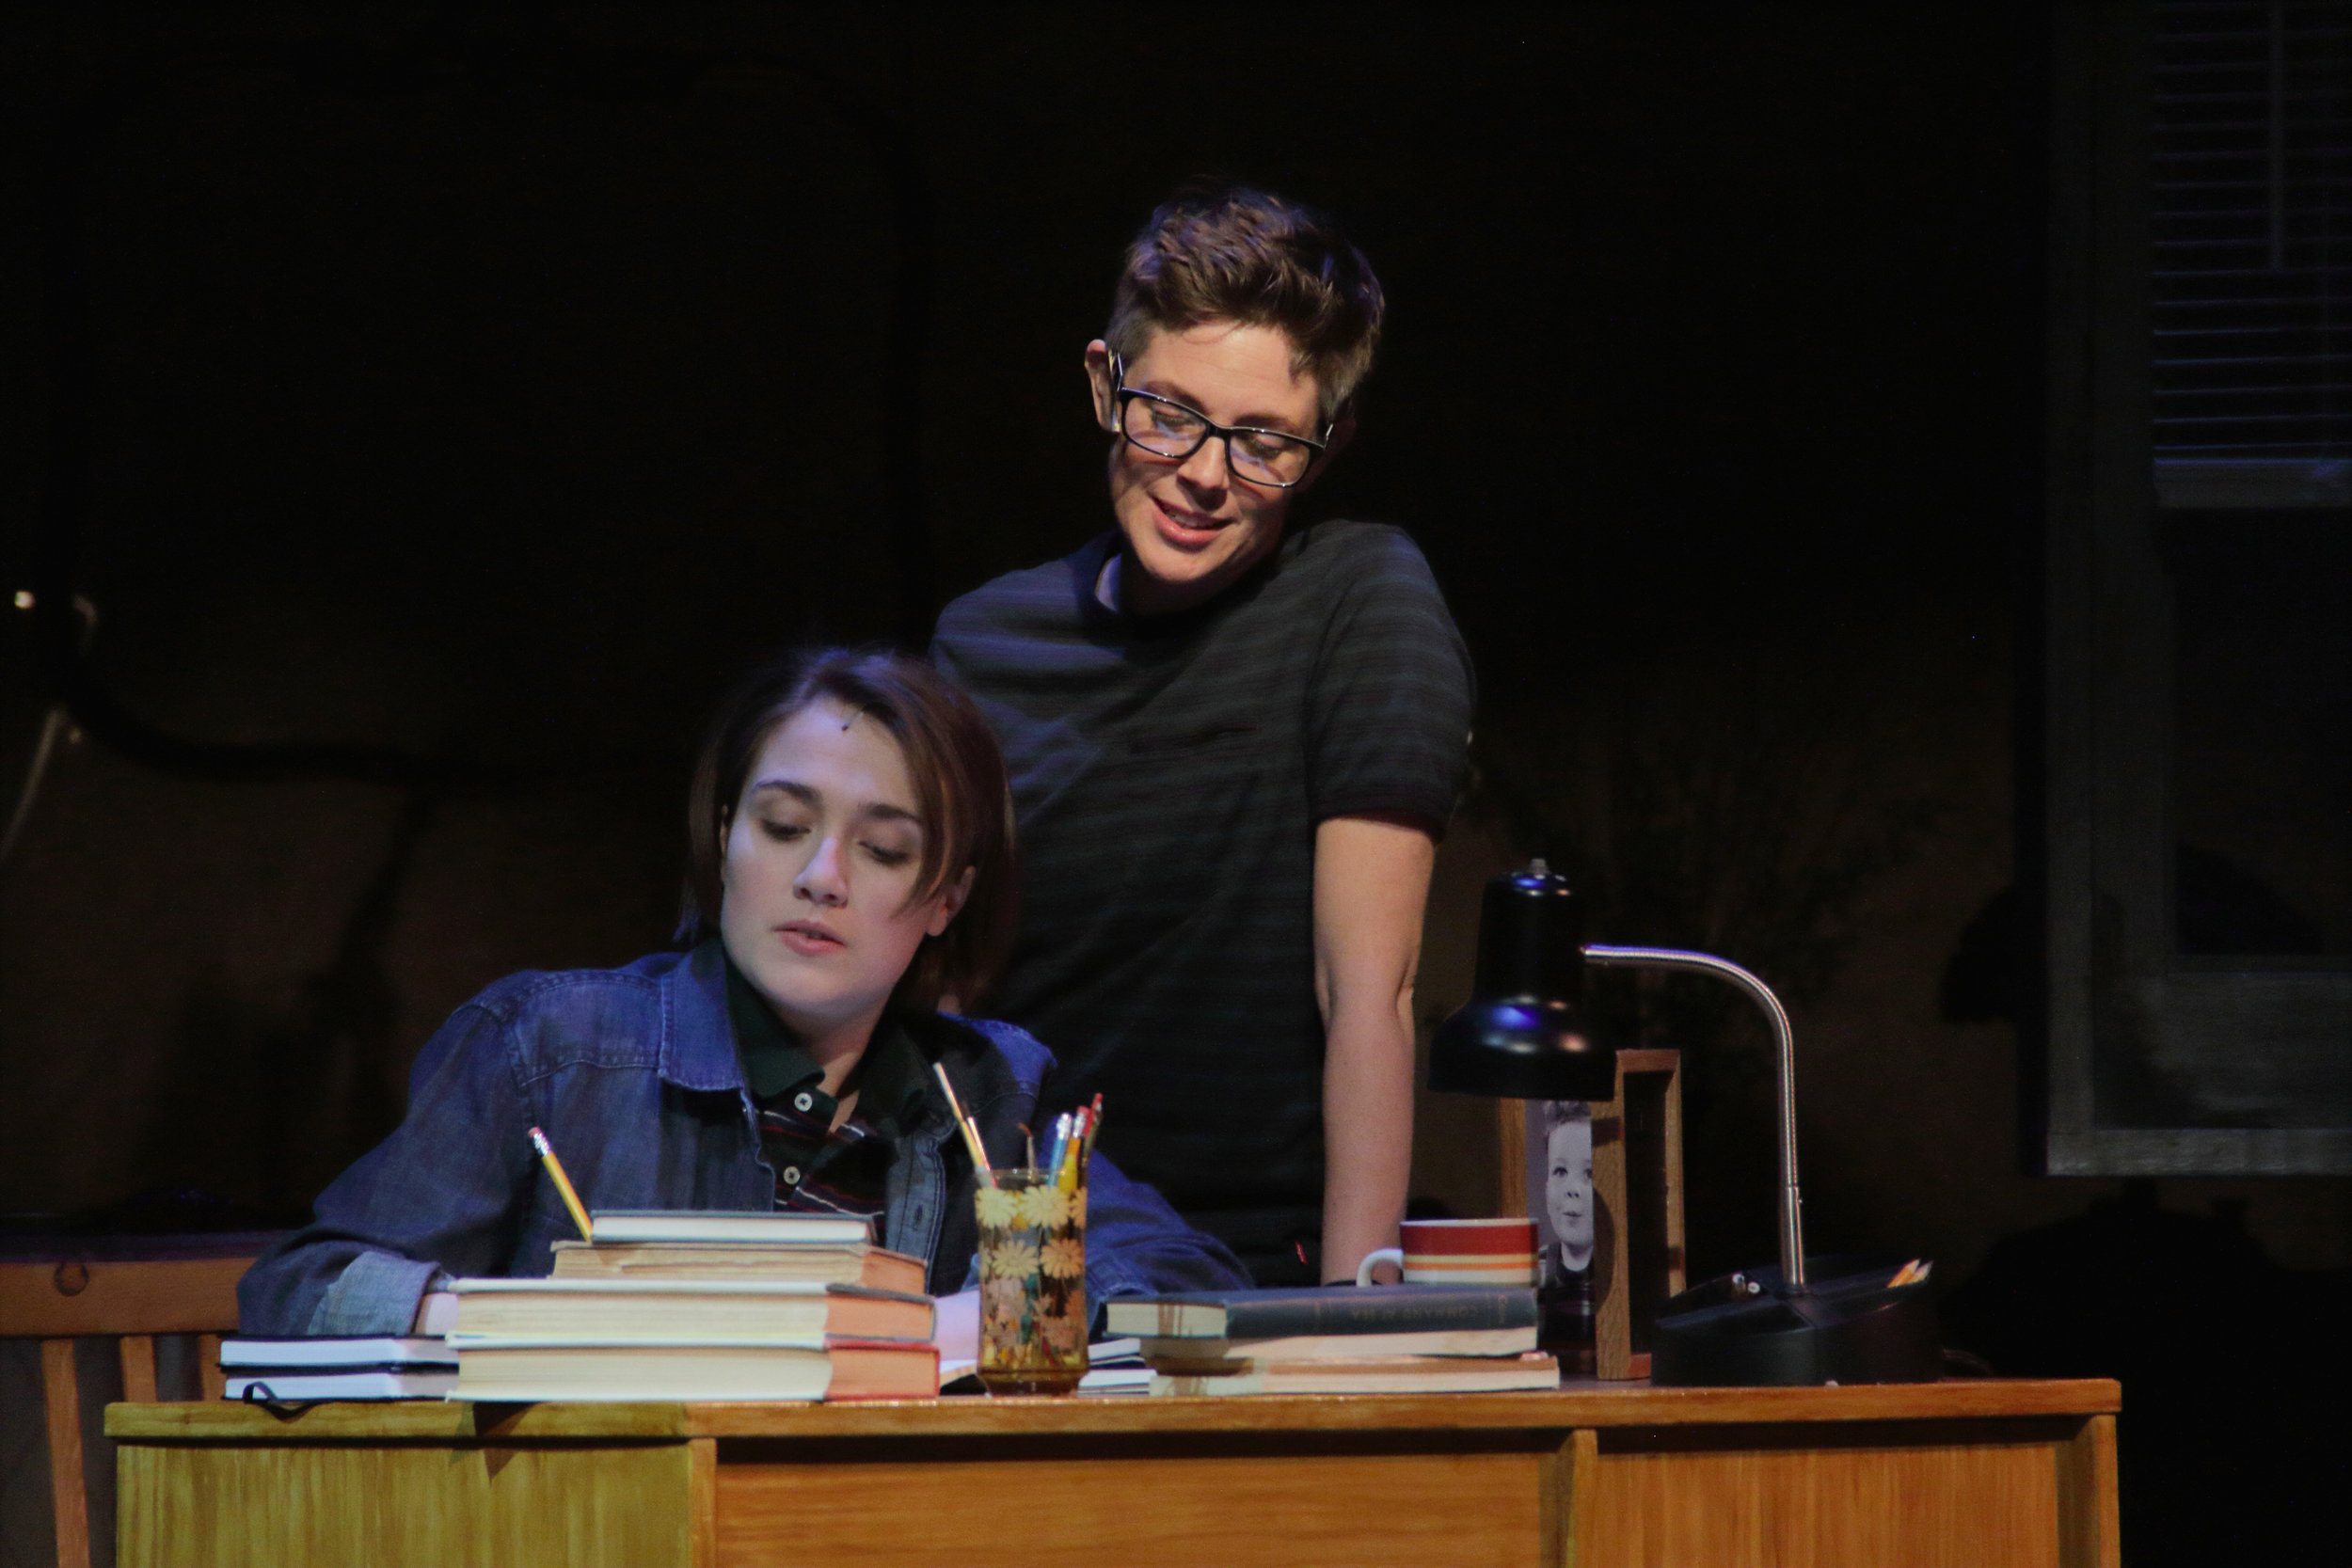 Copy of FunHome closeups 047_edit.jpg